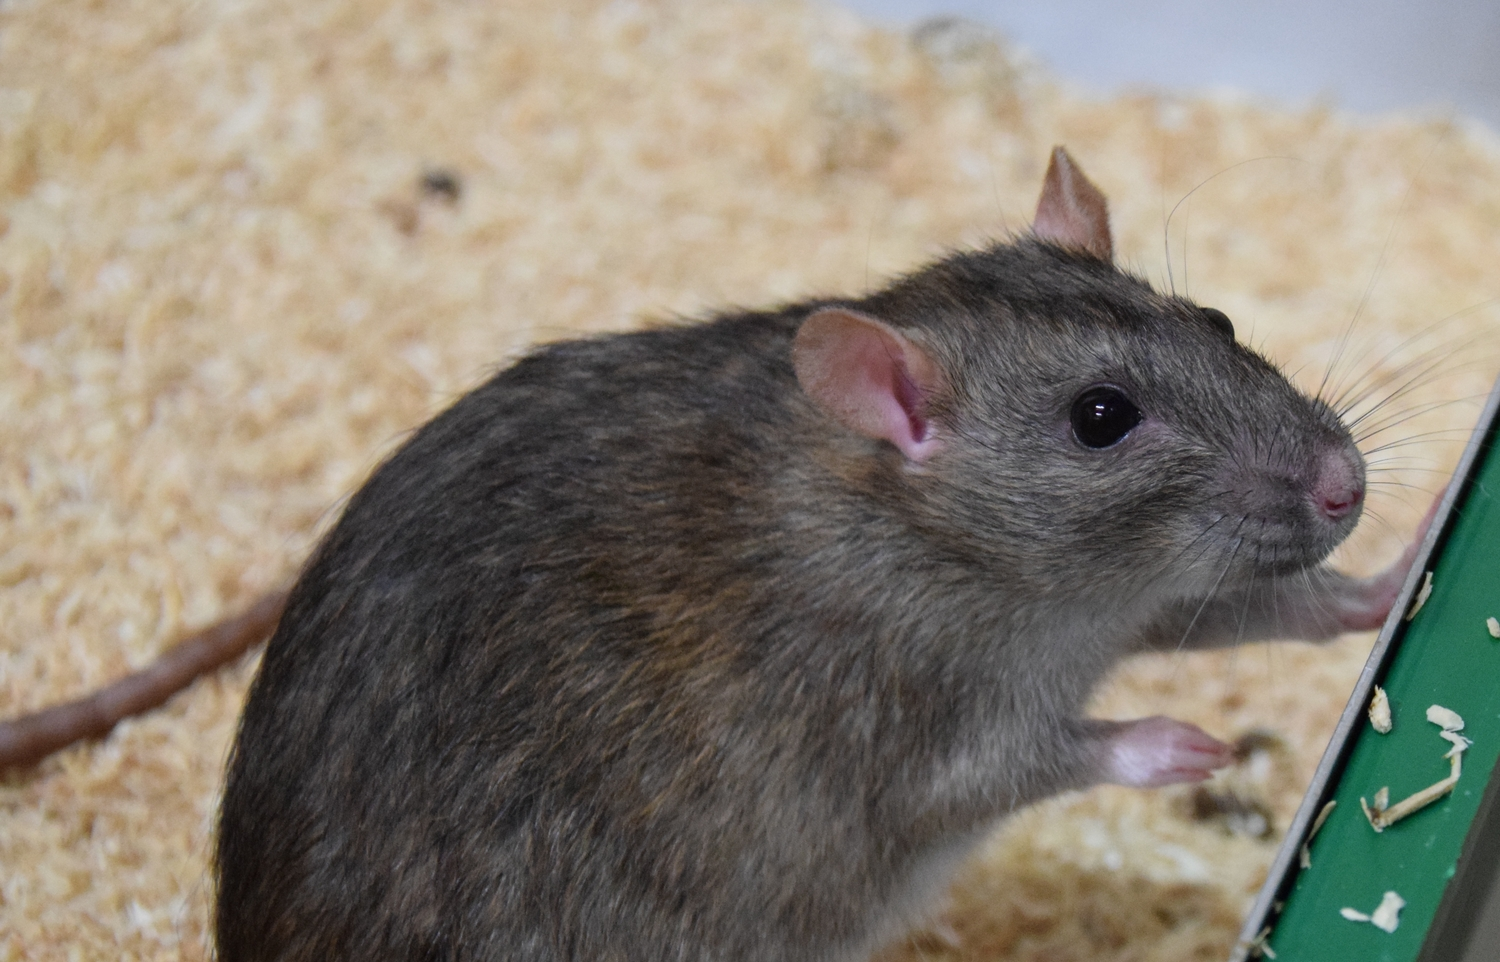 Norway rats (Rattus norvegicus), like most species of rat, are very sociable and cooperate to help each other out